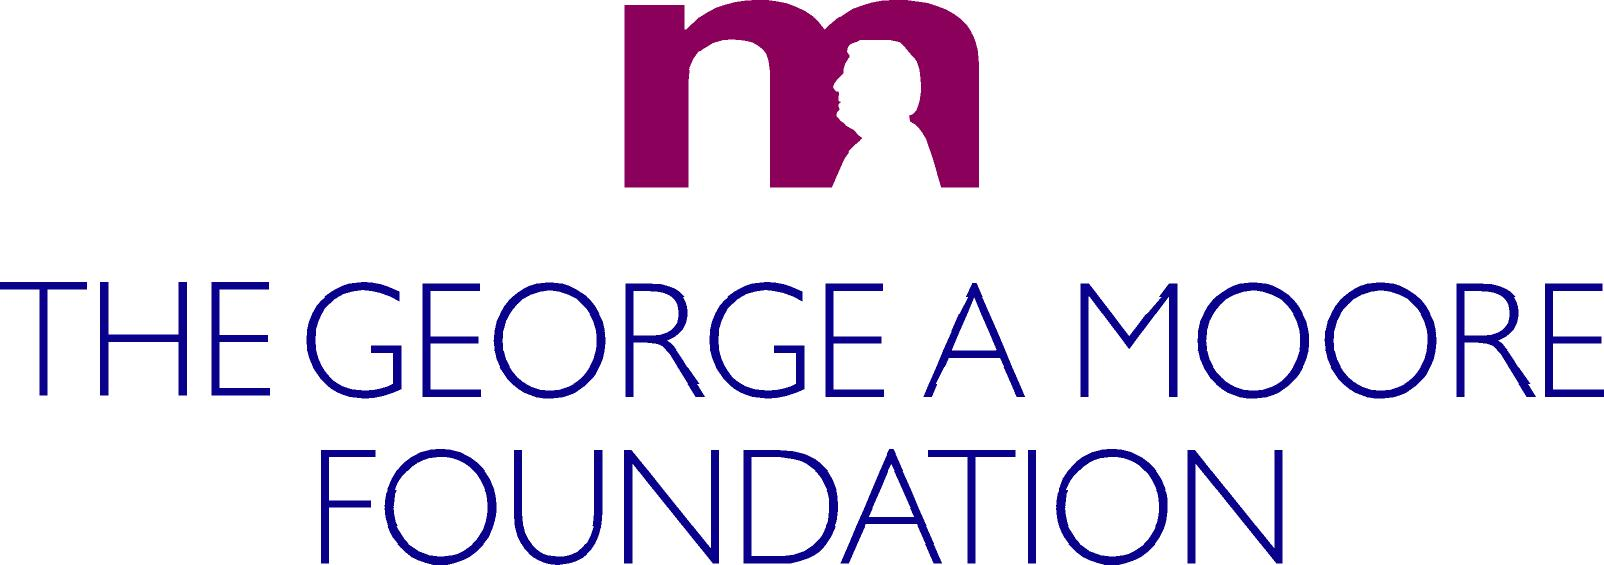 The George A Moore Foundation